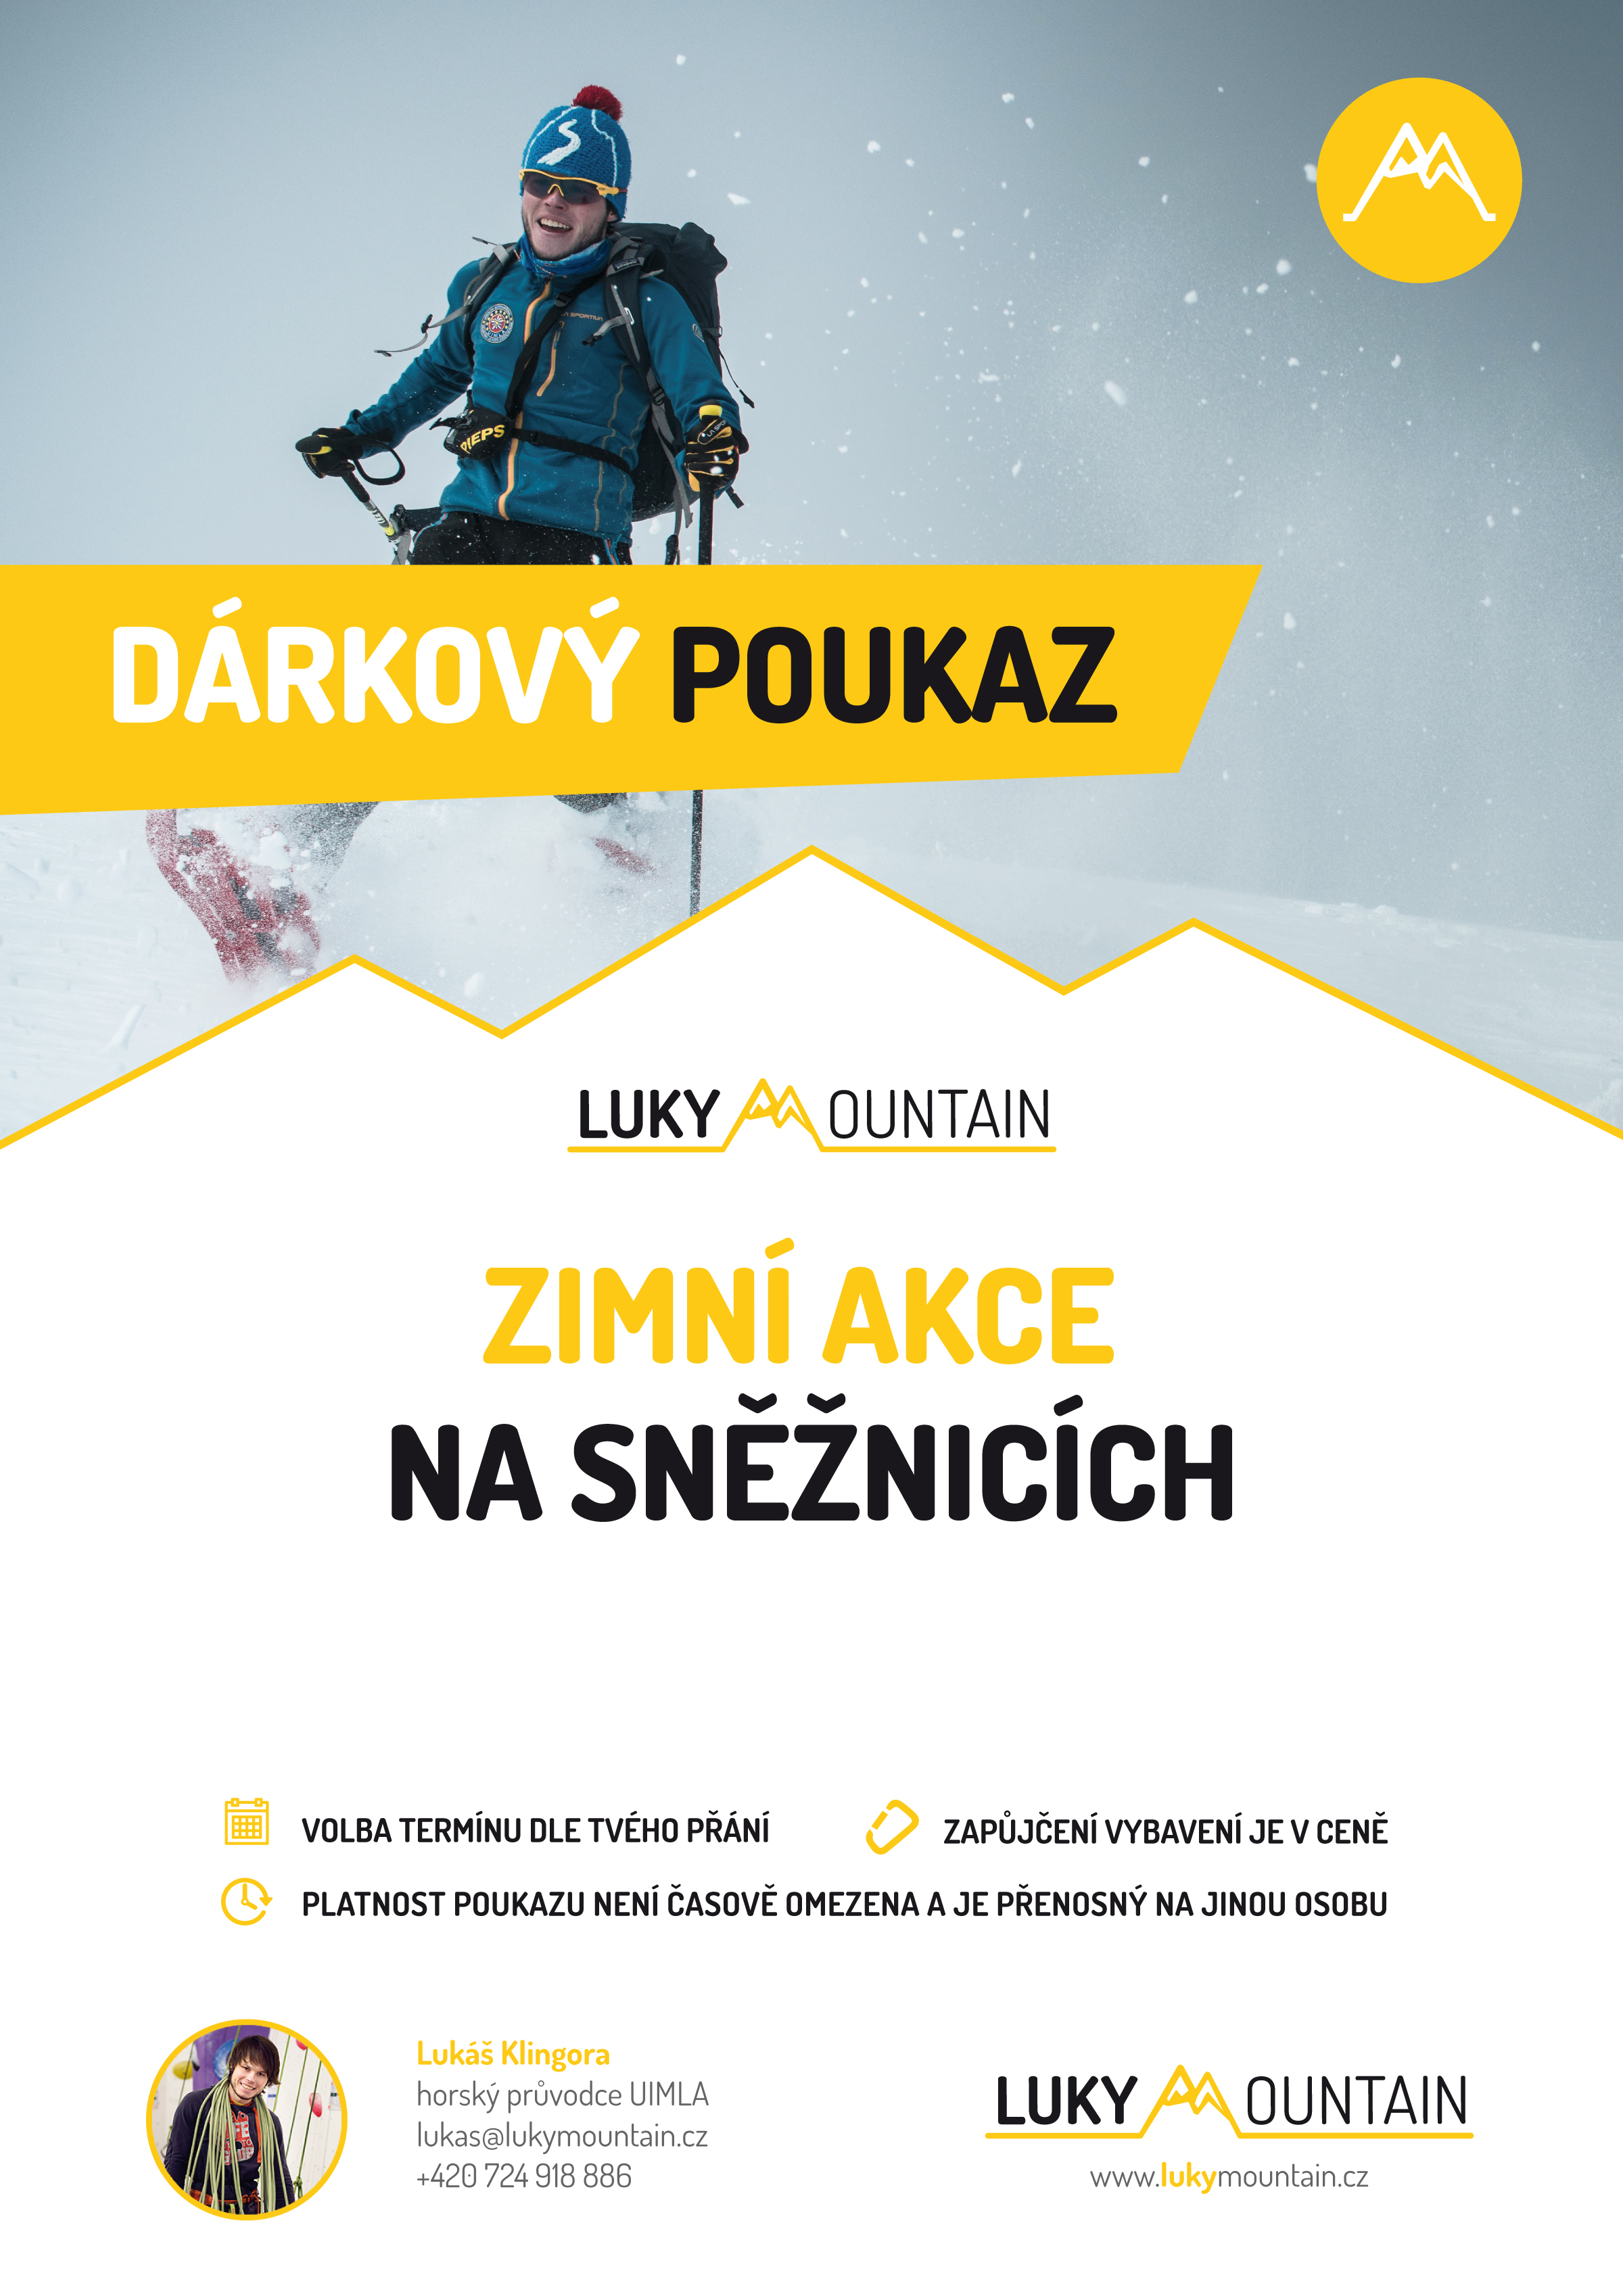 lukymountain-poukazy-sneznice-sample